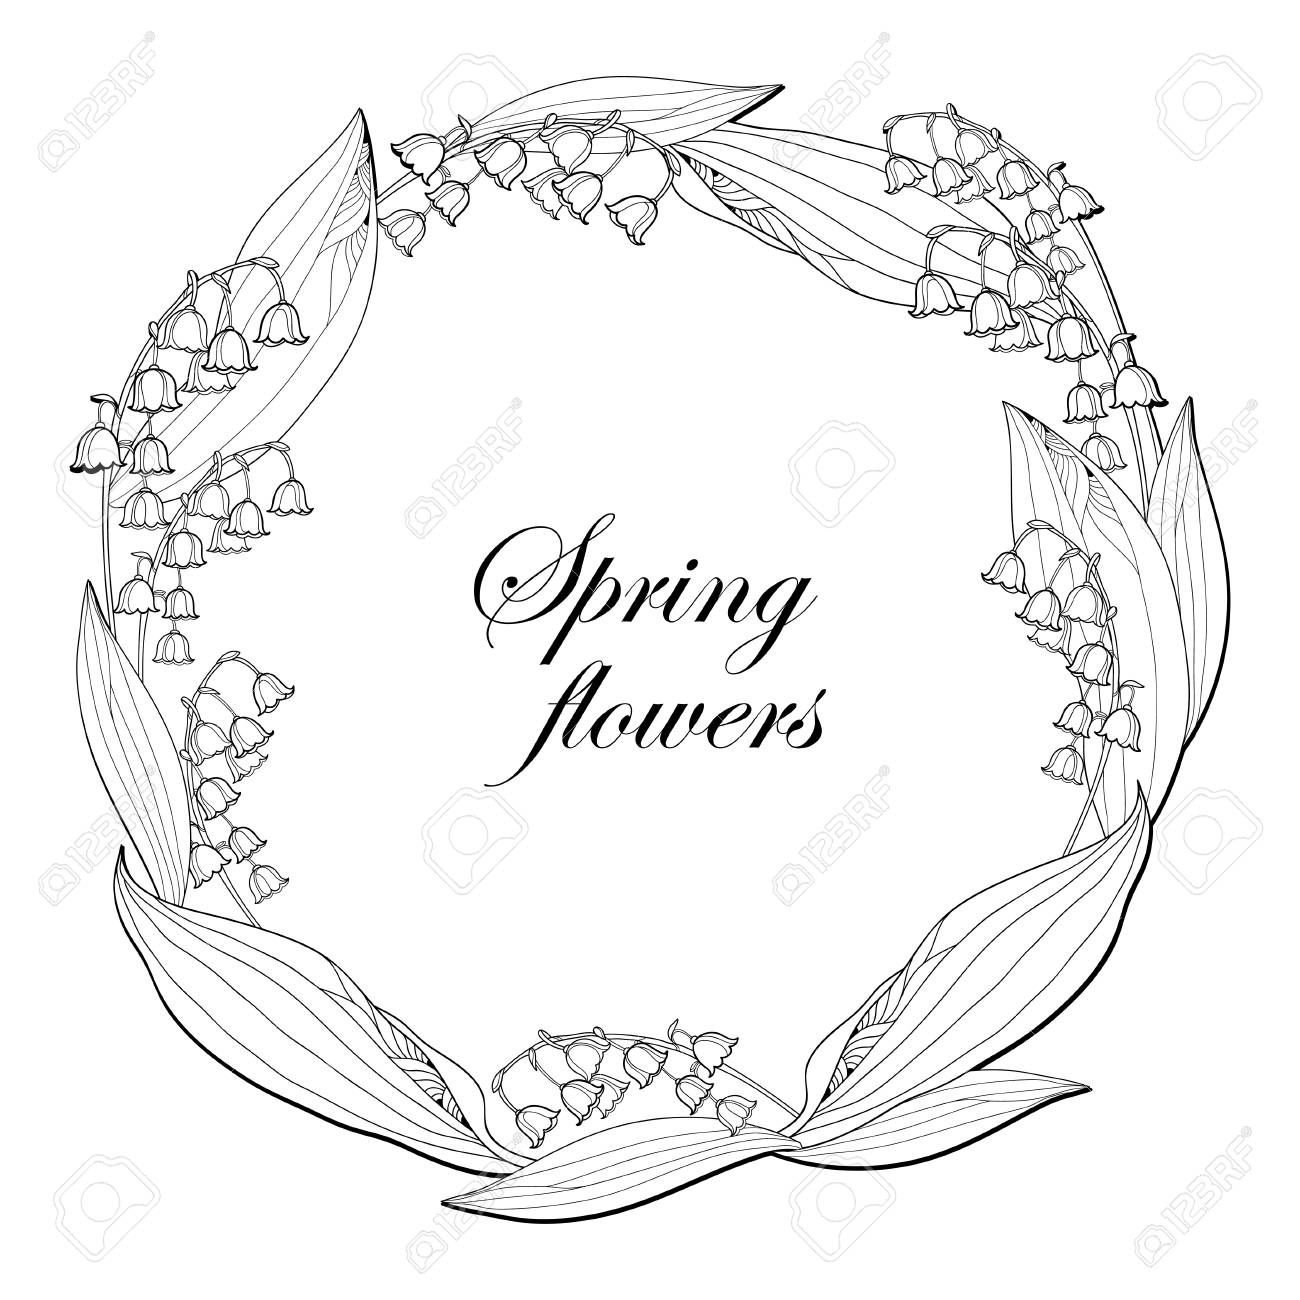 Valley Drawing Outline Wiring Diagrams Electric Motors Ge Instant Reverse Motor C1459 Screw Driver Round Wreath With Lily Of The Or Convallaria Flower Rh 123rf Com Drawings